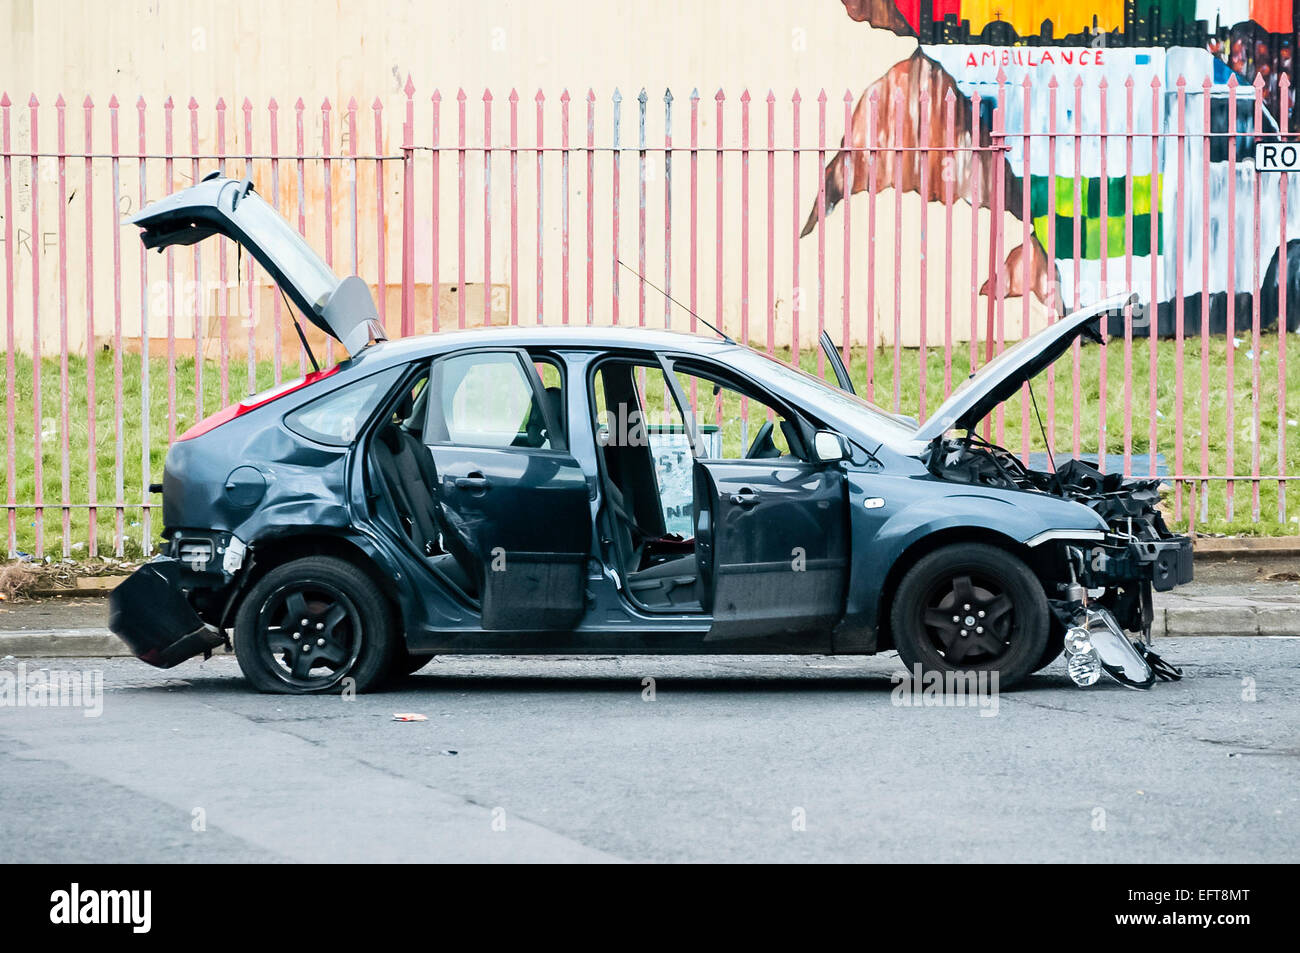 A car is destroyed by a bomb in Belfast. - Stock Image